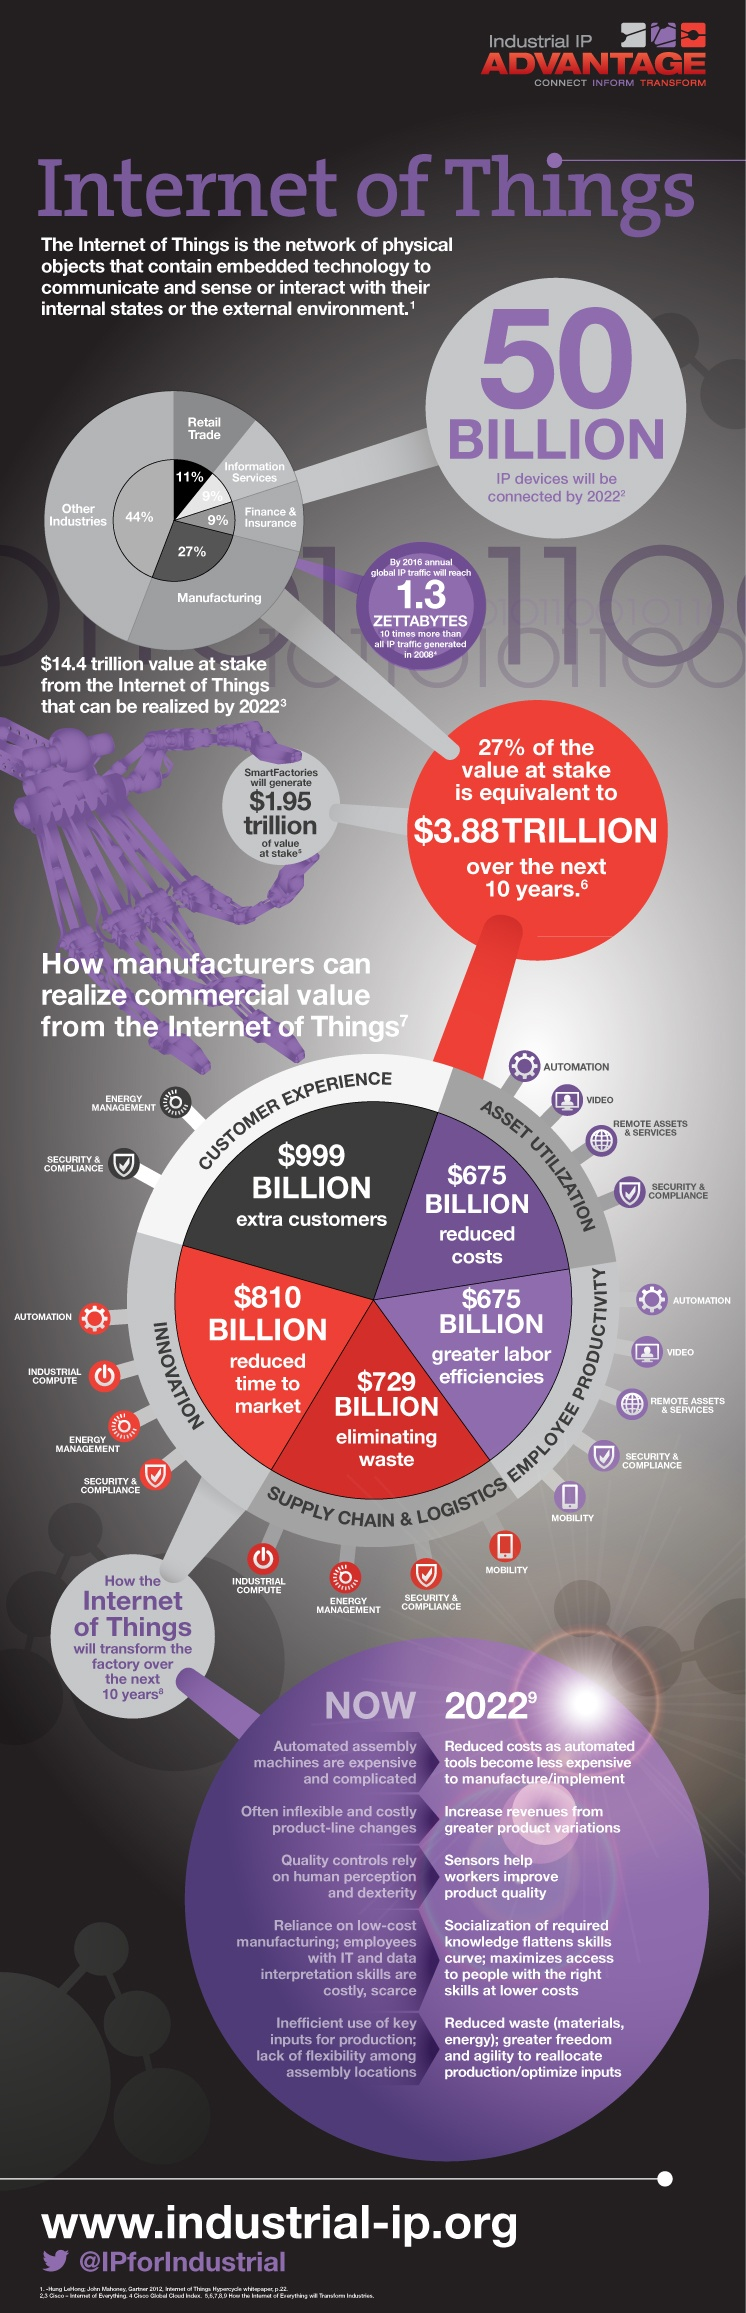 20701_Internet_of_Things_infographic2_V2_VIS